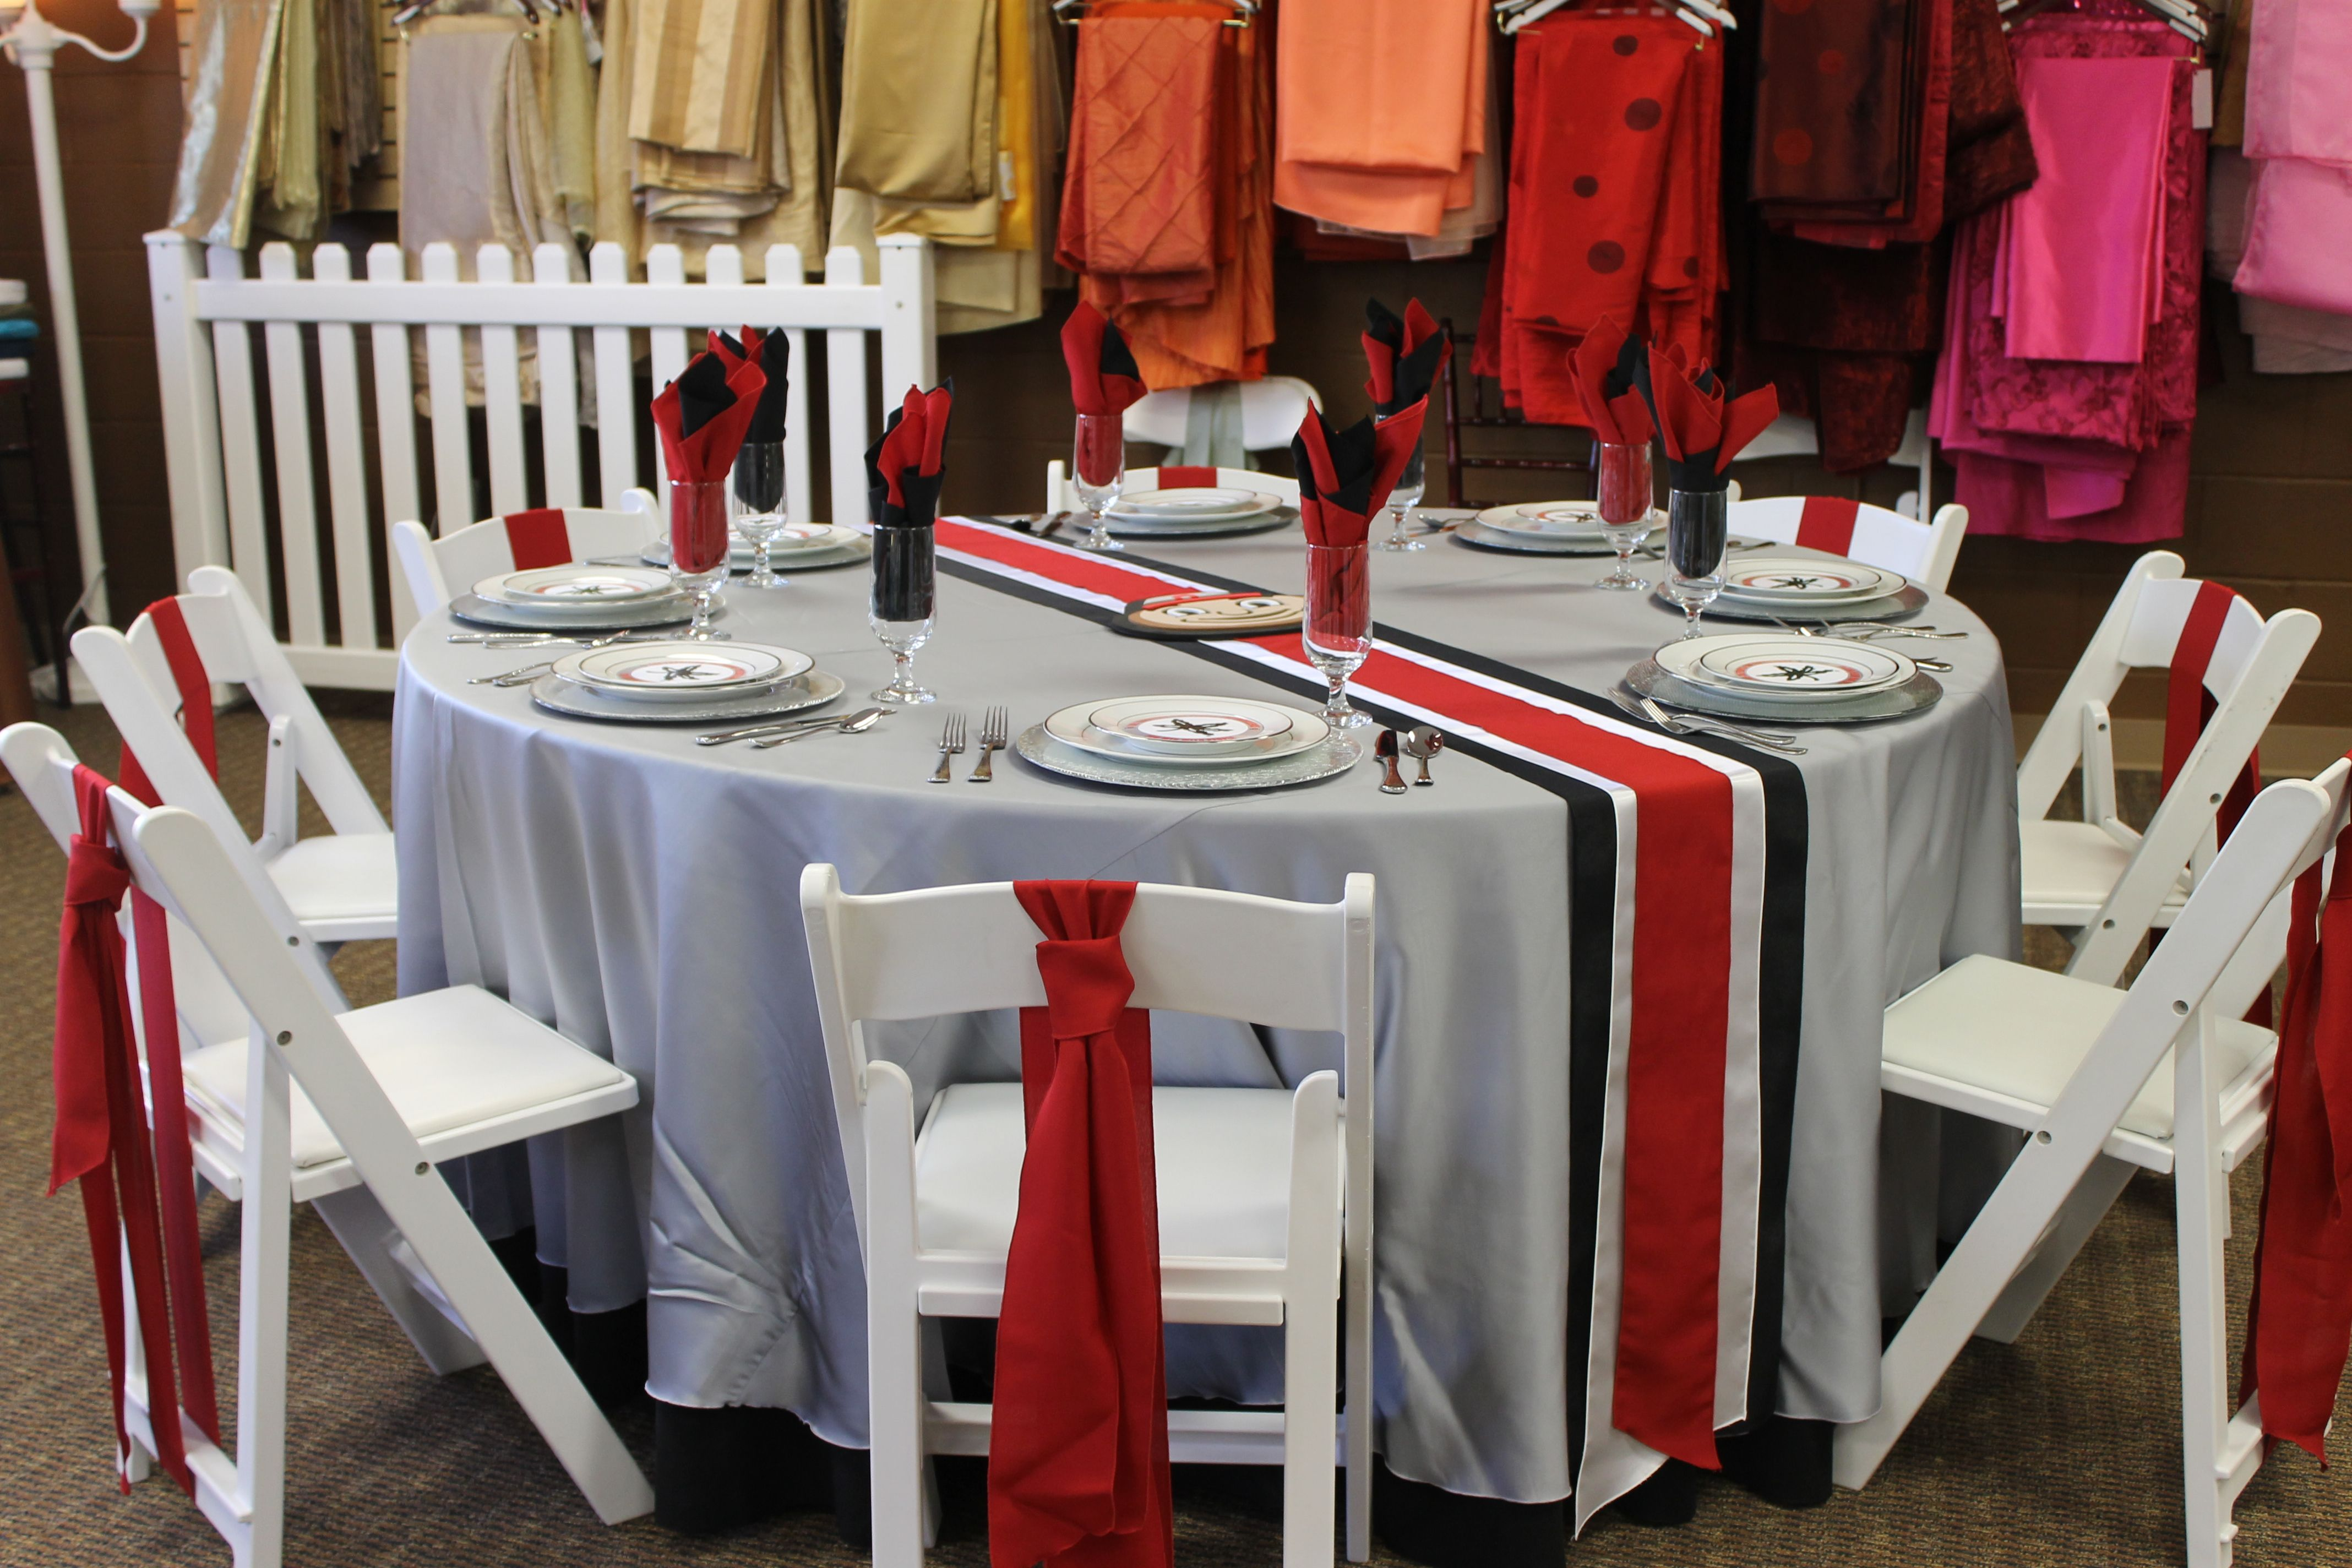 chairs to wedding blue rentals folding x full plastic way inside chair size covers rental the tables outdoor modern designer dc and garden patio for easy of furniture table maintain